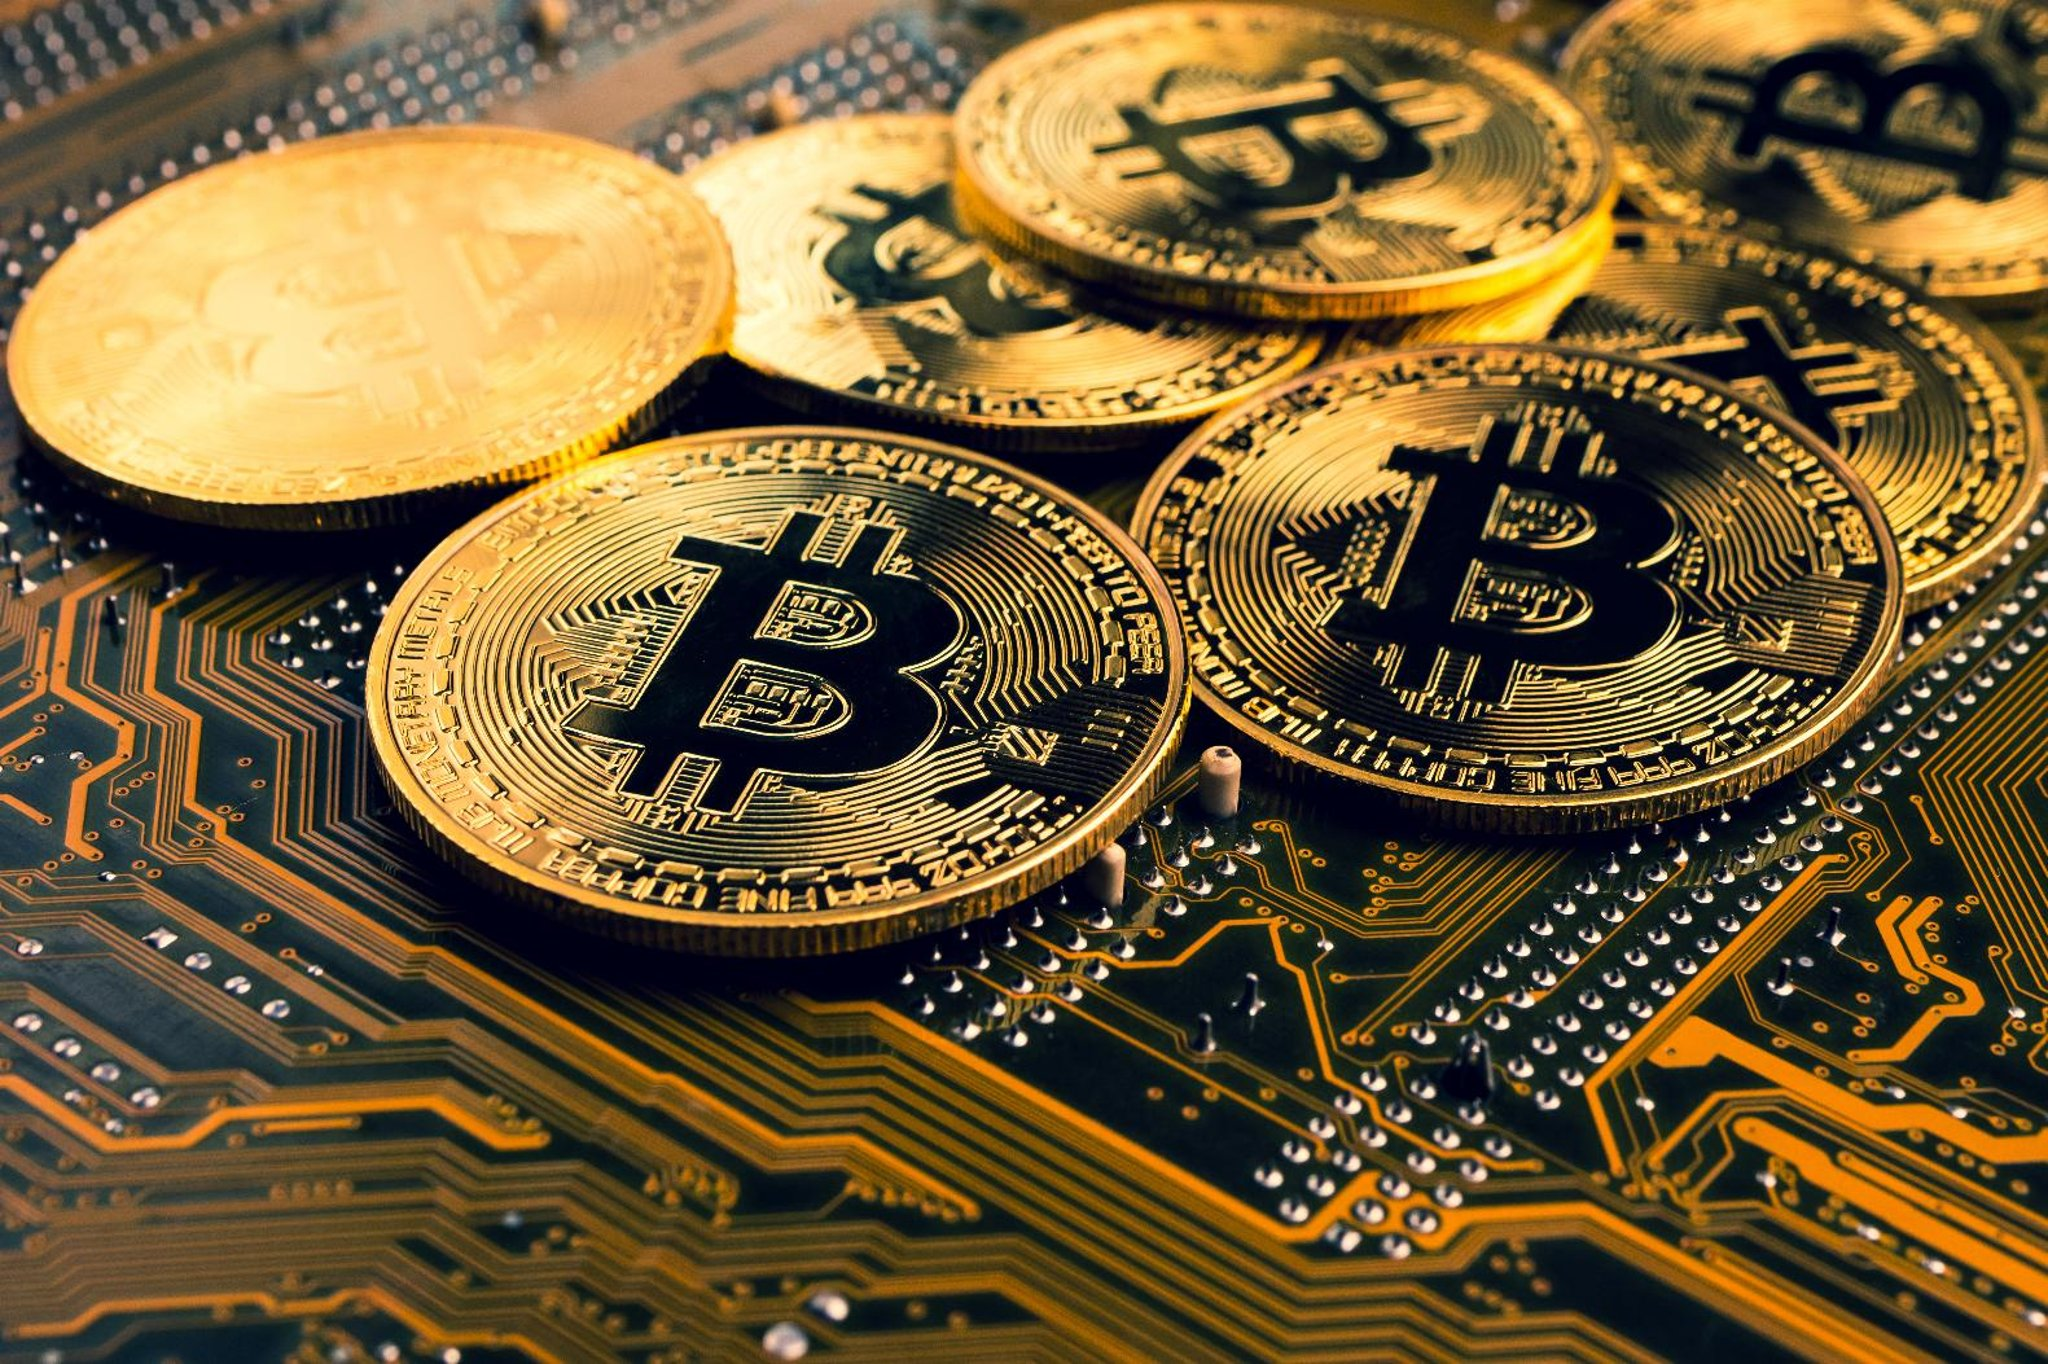 This is what sparked the crypto market crash which saw Bitcoin, Ethereum, Dogecoin and other prices drop significantly